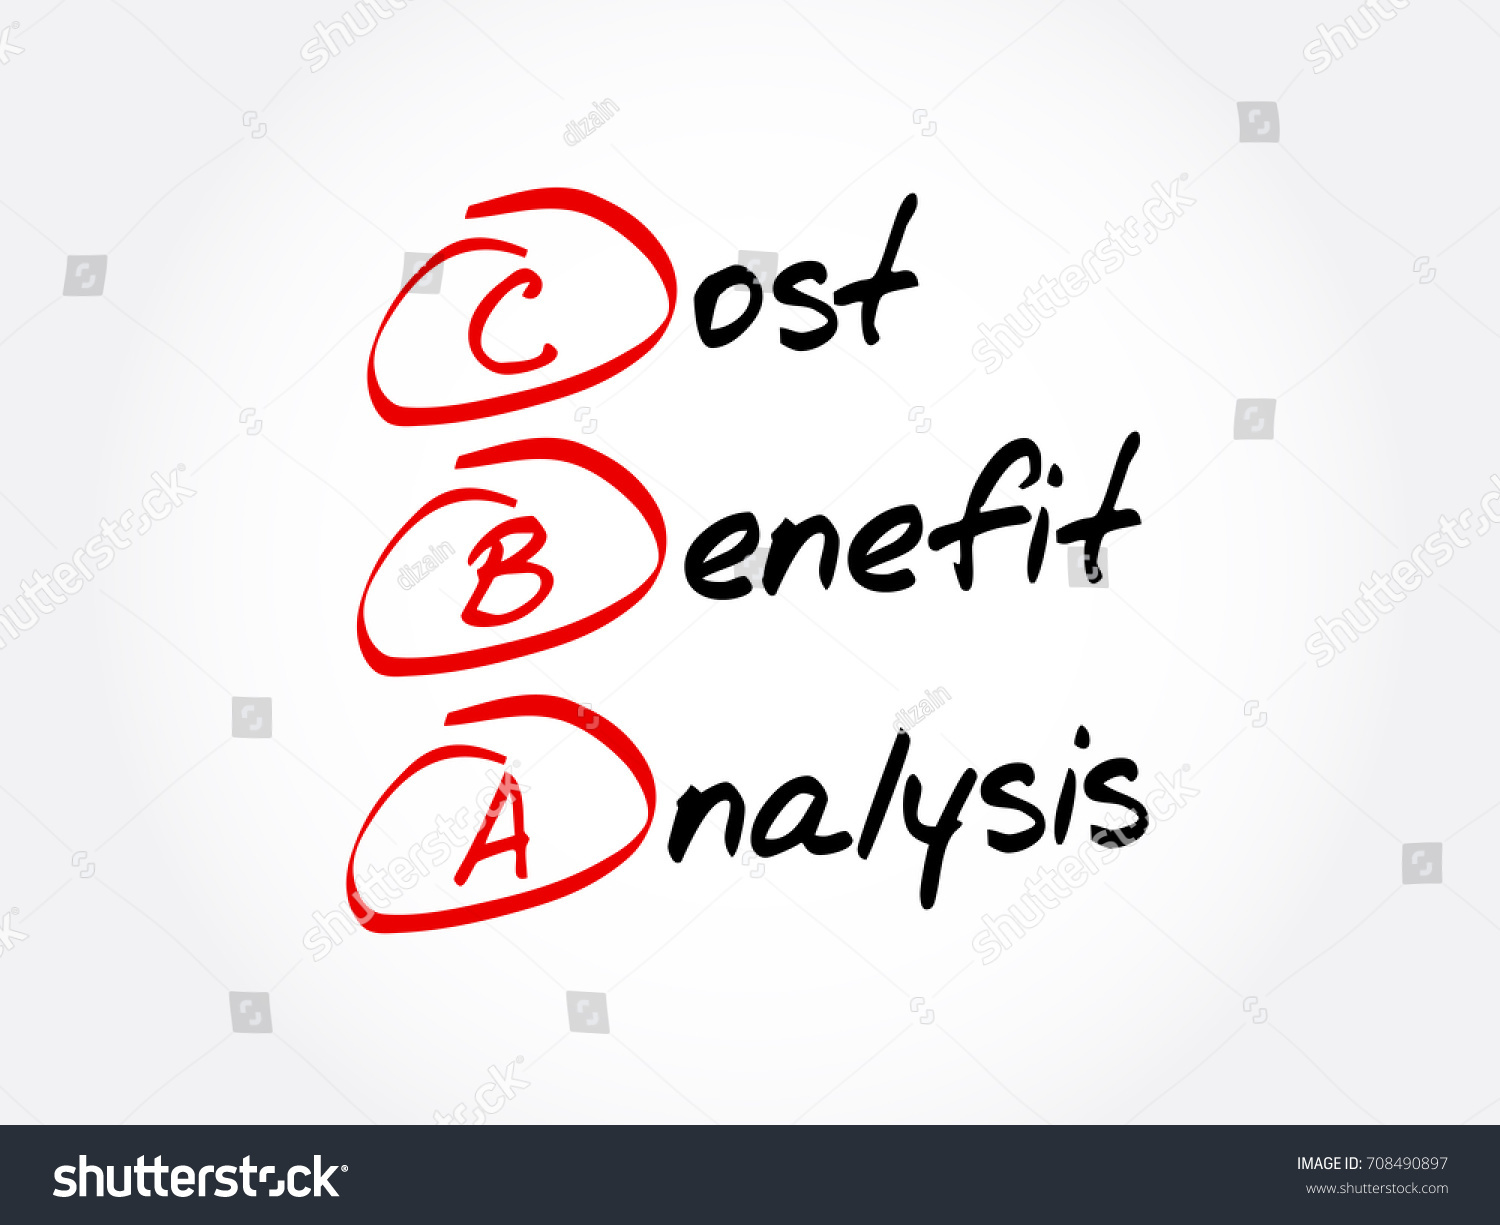 CBA   Cost Benefit Analysis, Acronym Business Concept Background